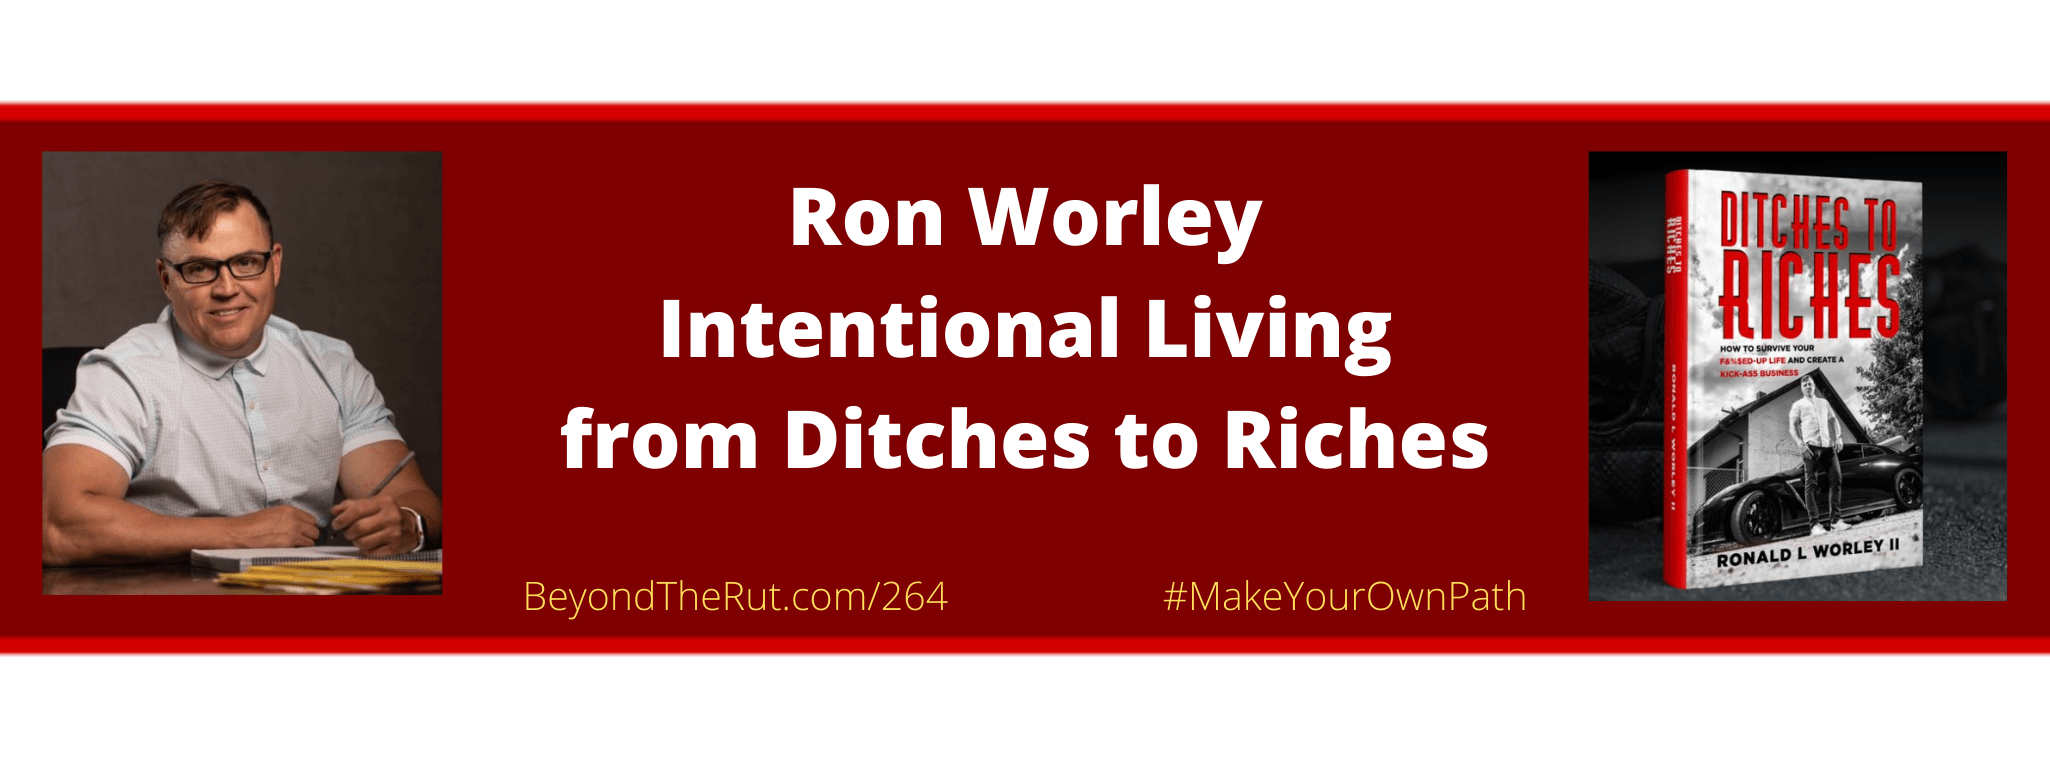 Intentional Living saved Ron Worley's Life